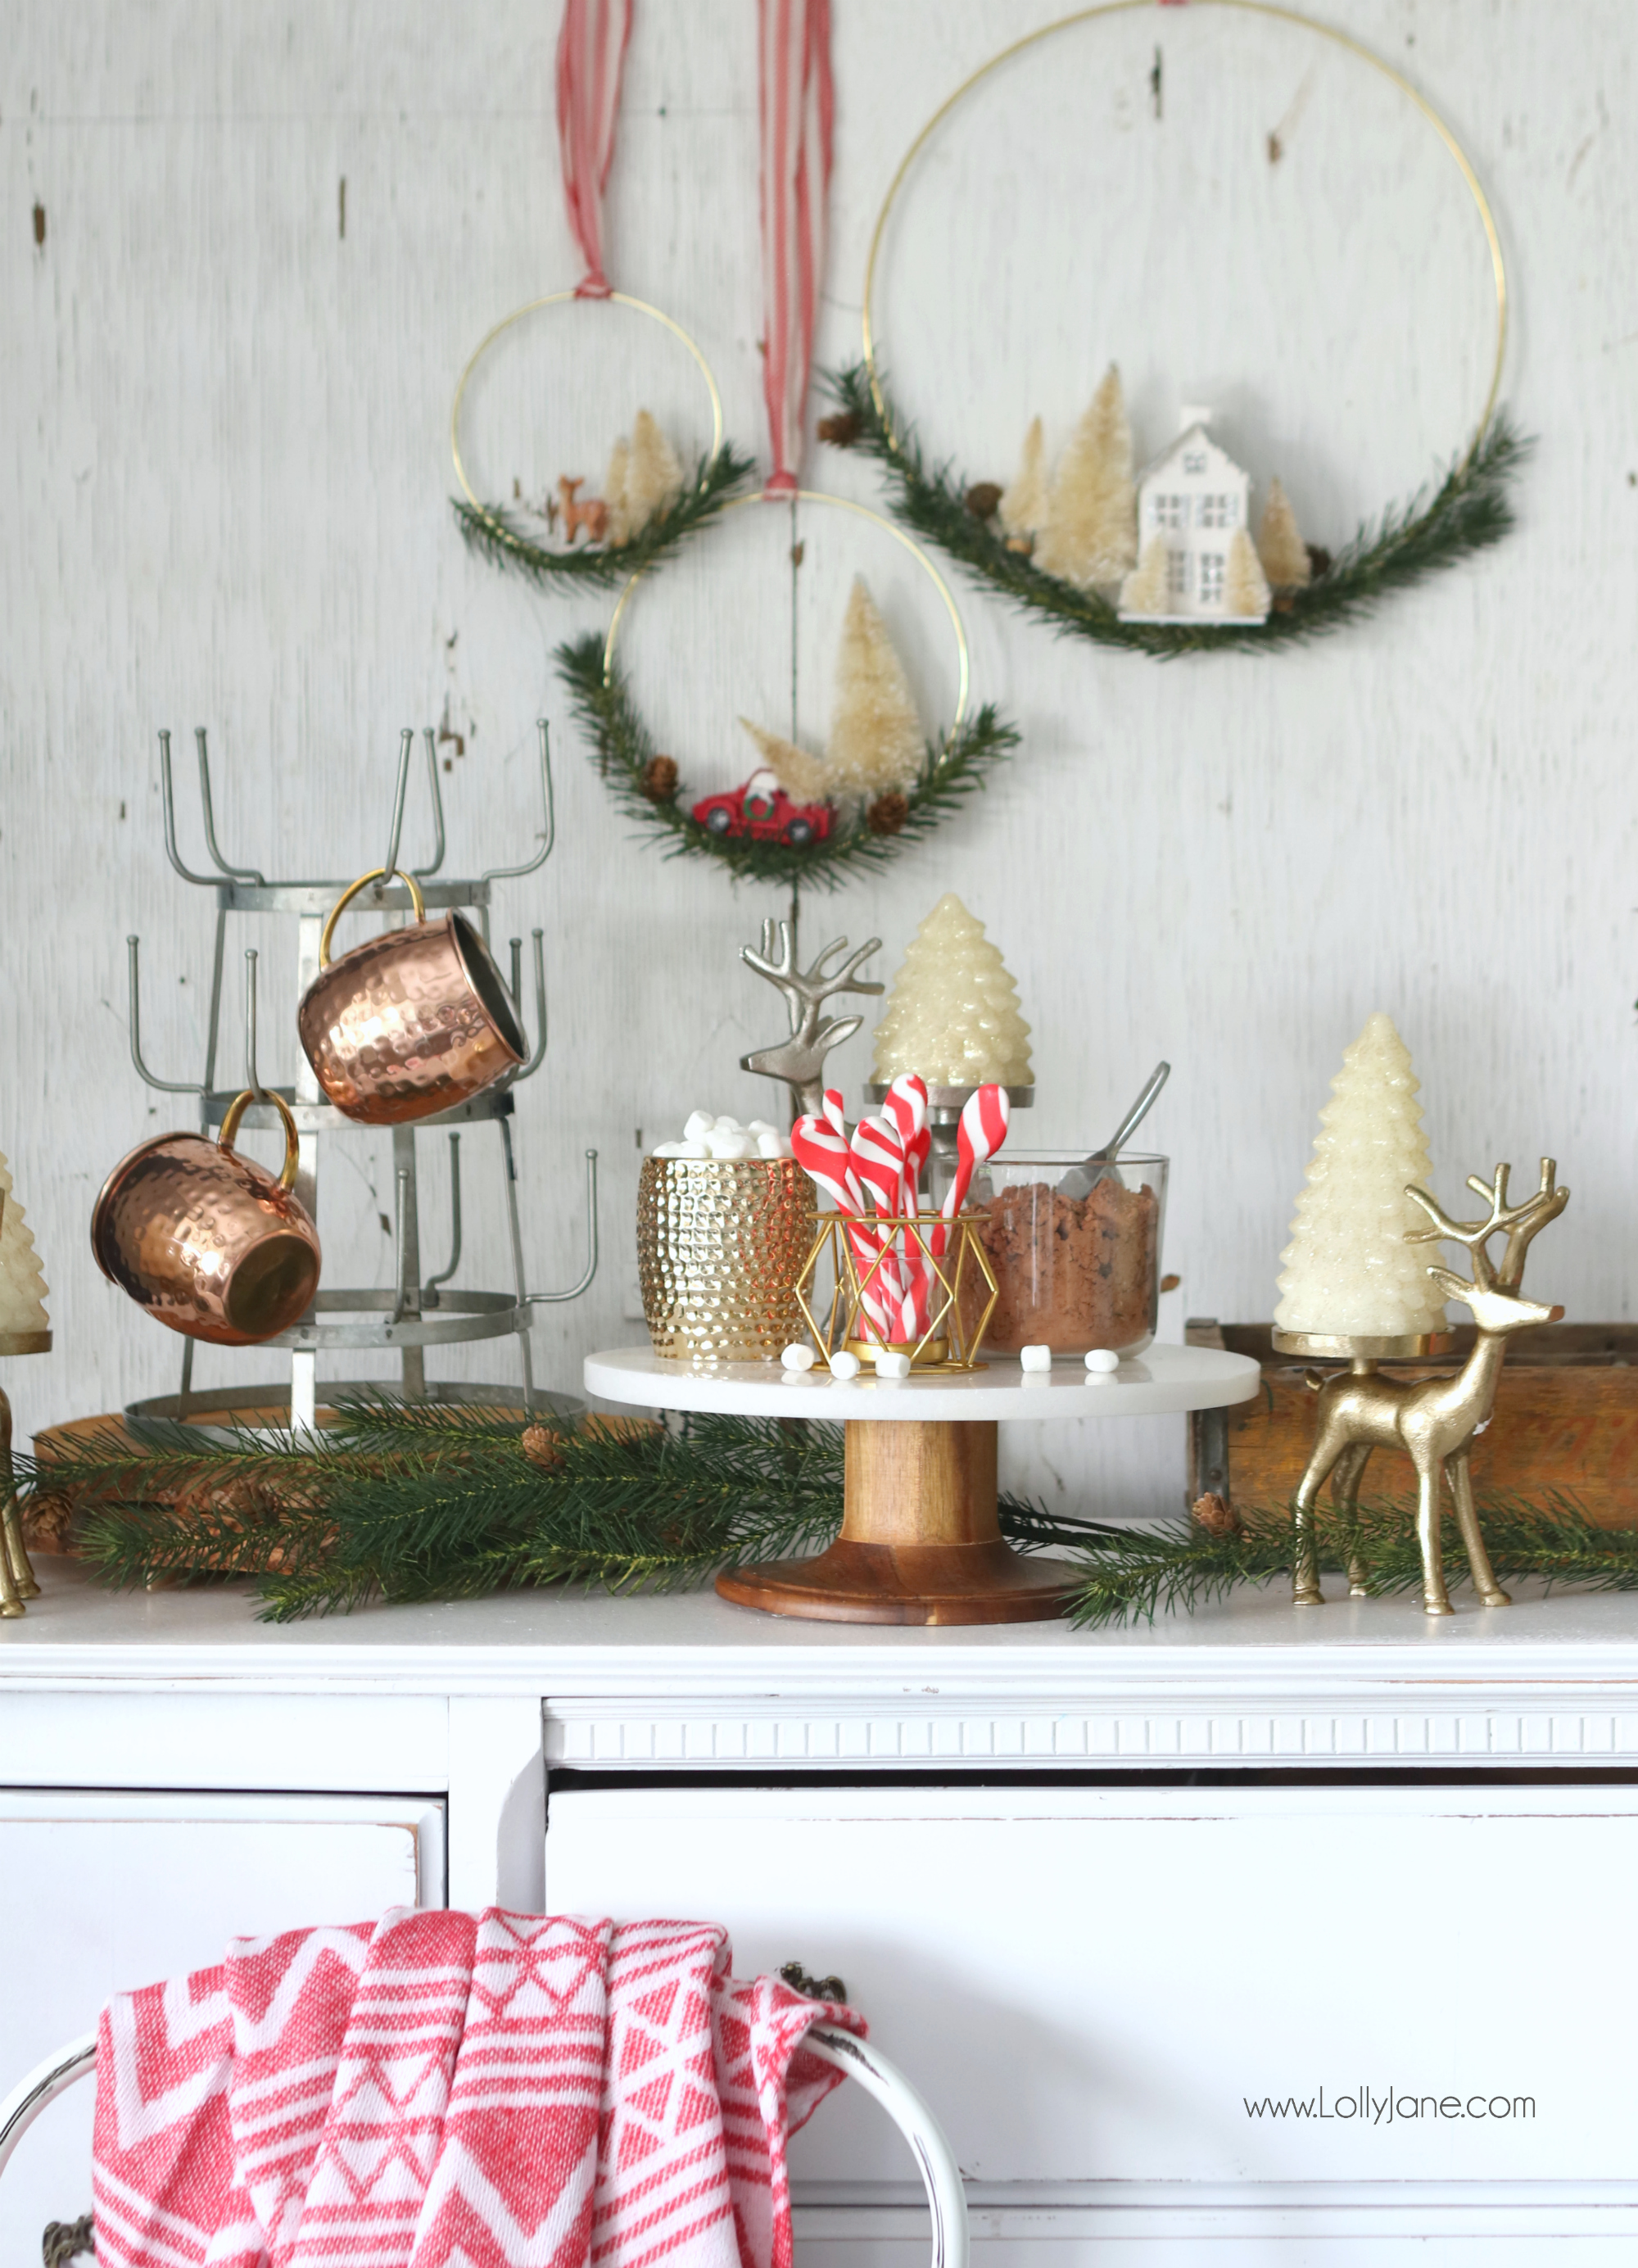 Love this setup to leave up all season! Easy Rustic Glam Hot Chocolate Station, perfect station to grab and go!